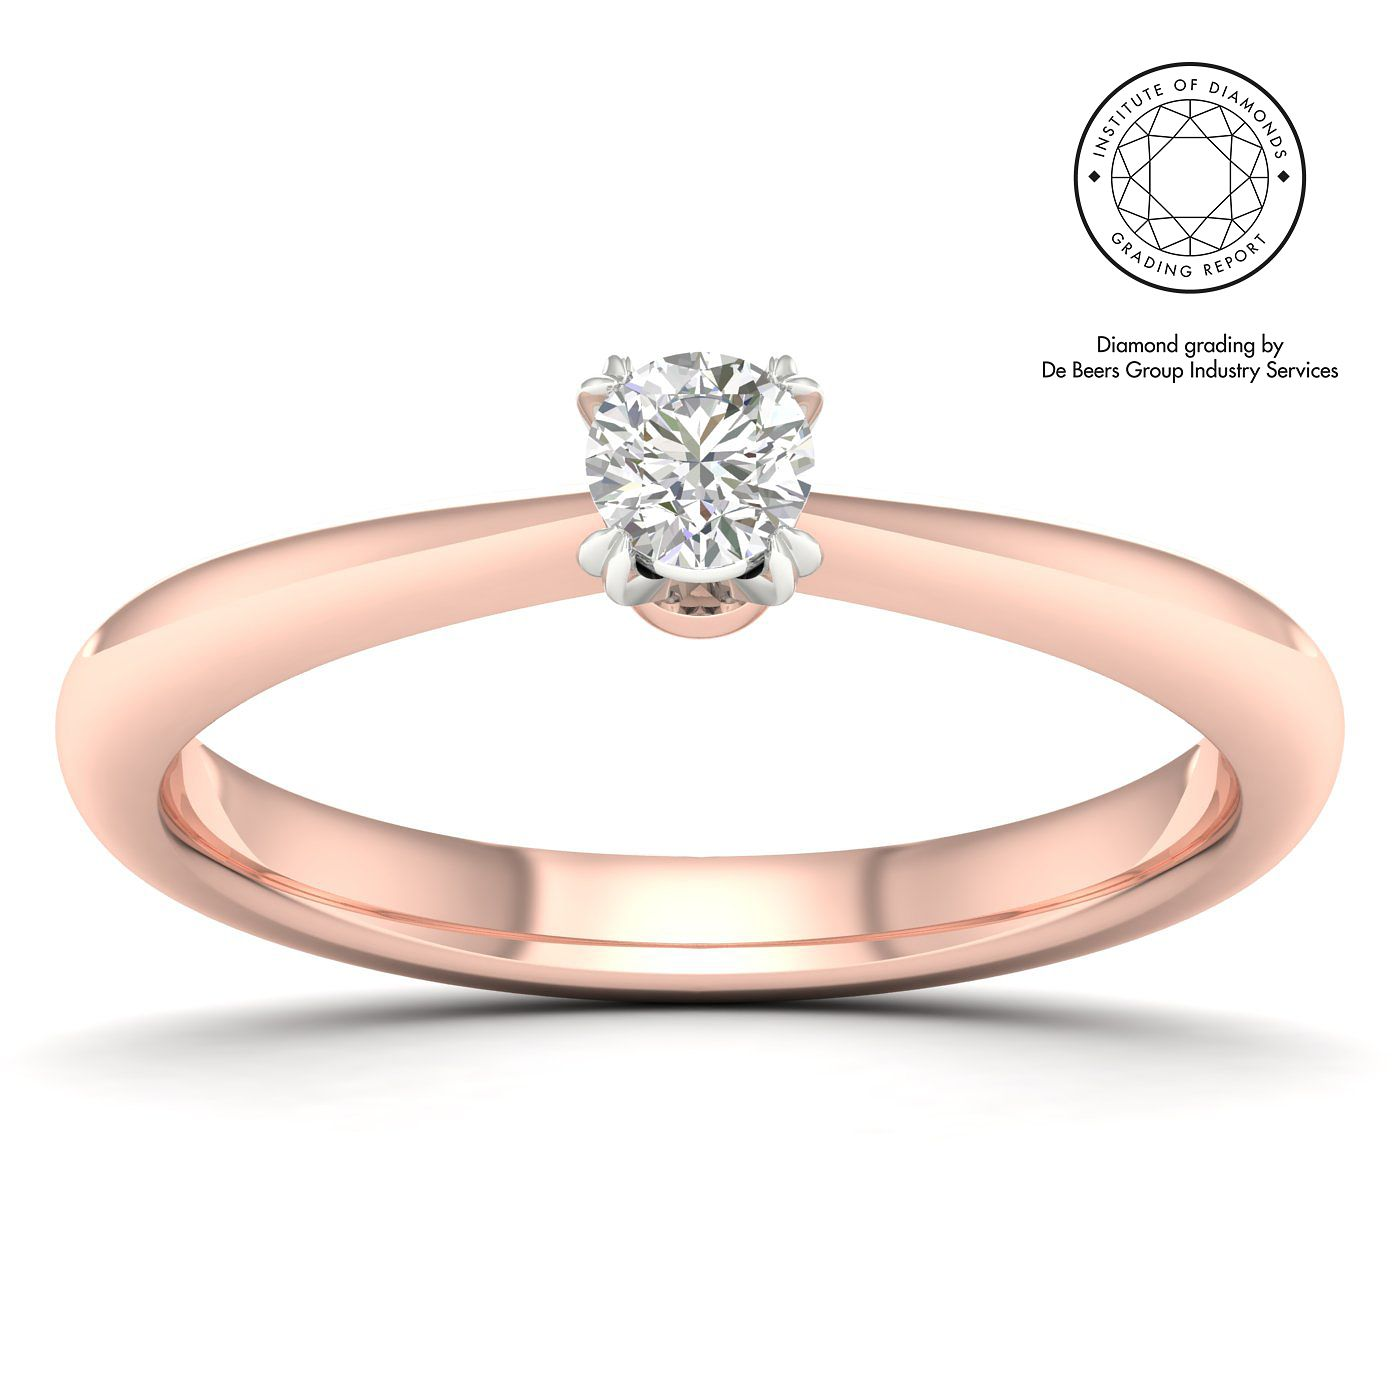 18ct Rose Gold & Platinum 1/5ct Diamond Solitaire Ring - Product number 2546140